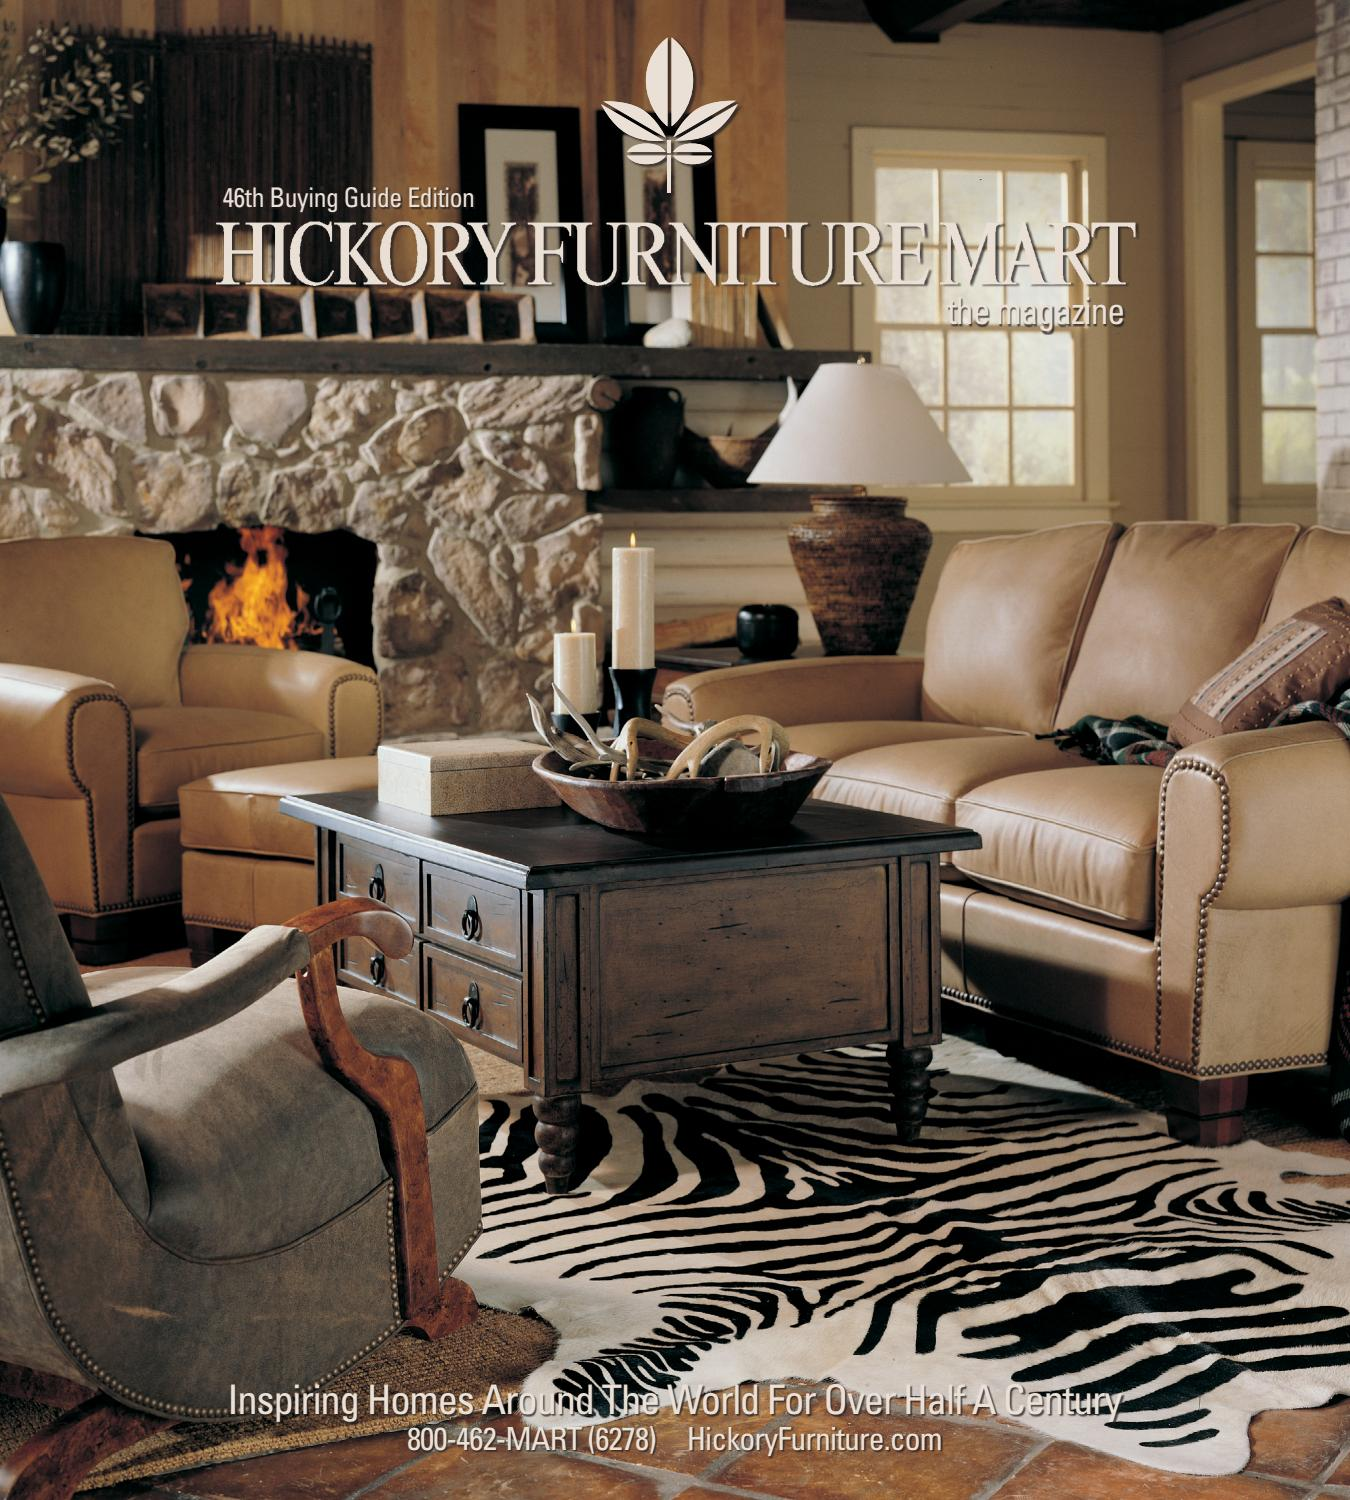 Hickory Furniture Mart Buying Guide 2018 by Hickory Furniture Mart